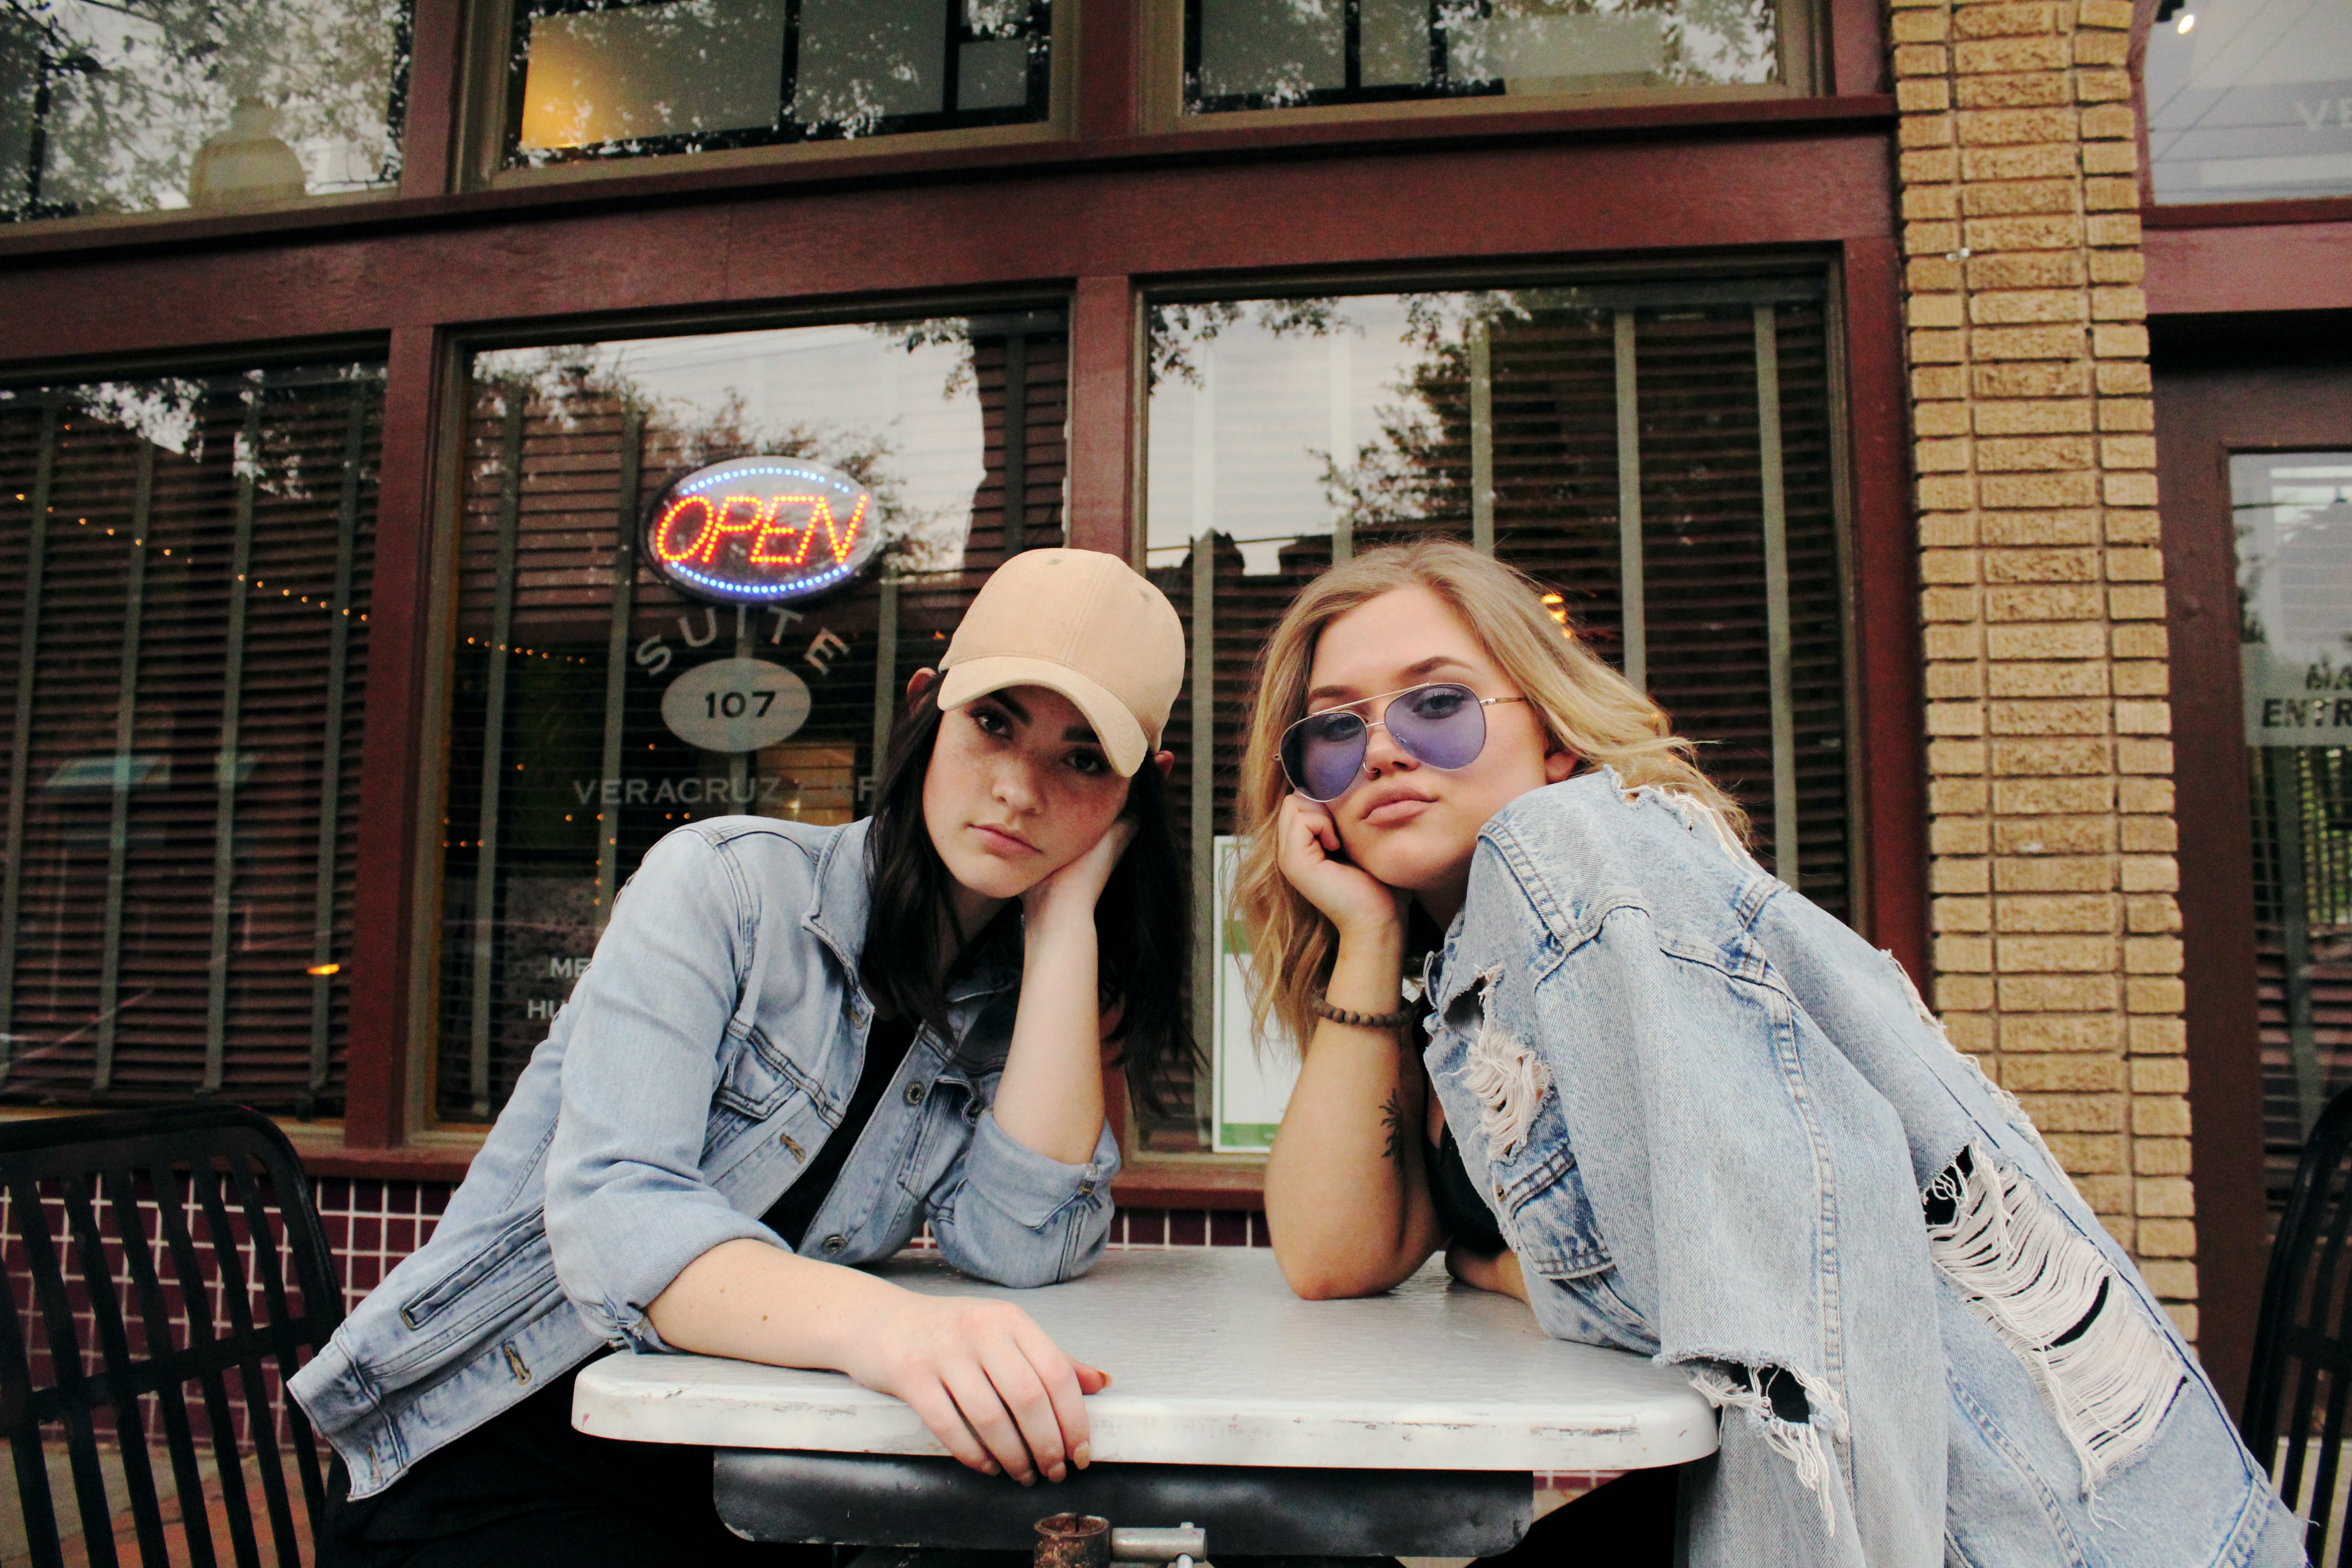 Two women in denim sit at a table in front of a business in Dallas